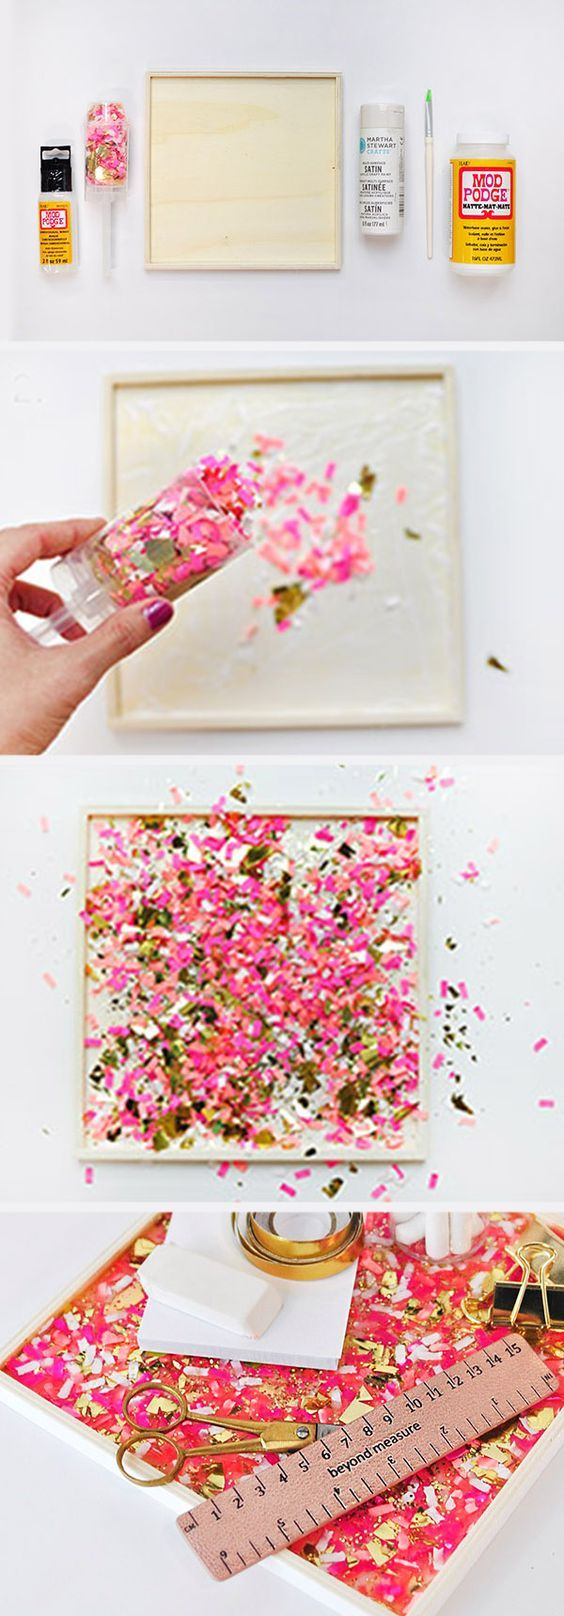 diy the back sparkle diy and crafts craft ideas colors shadow box fun